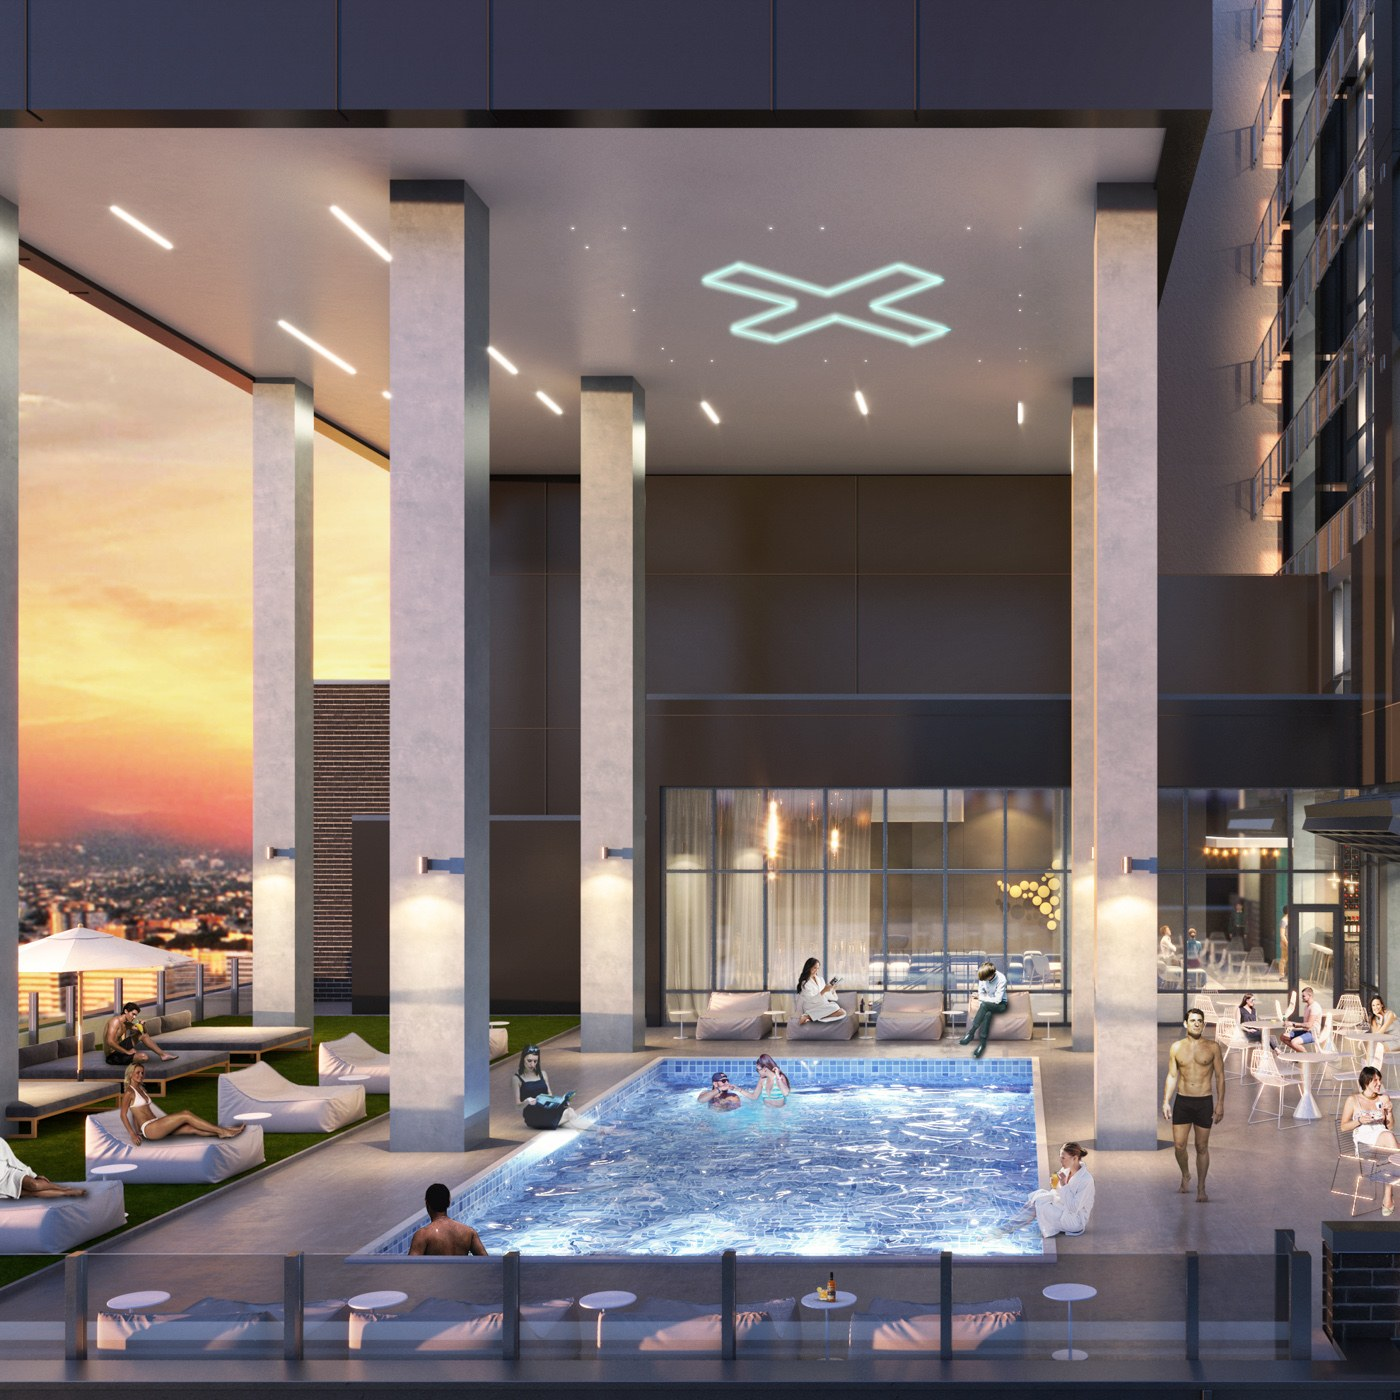 Amenity deck view of XD2, with residents enjoying the pool